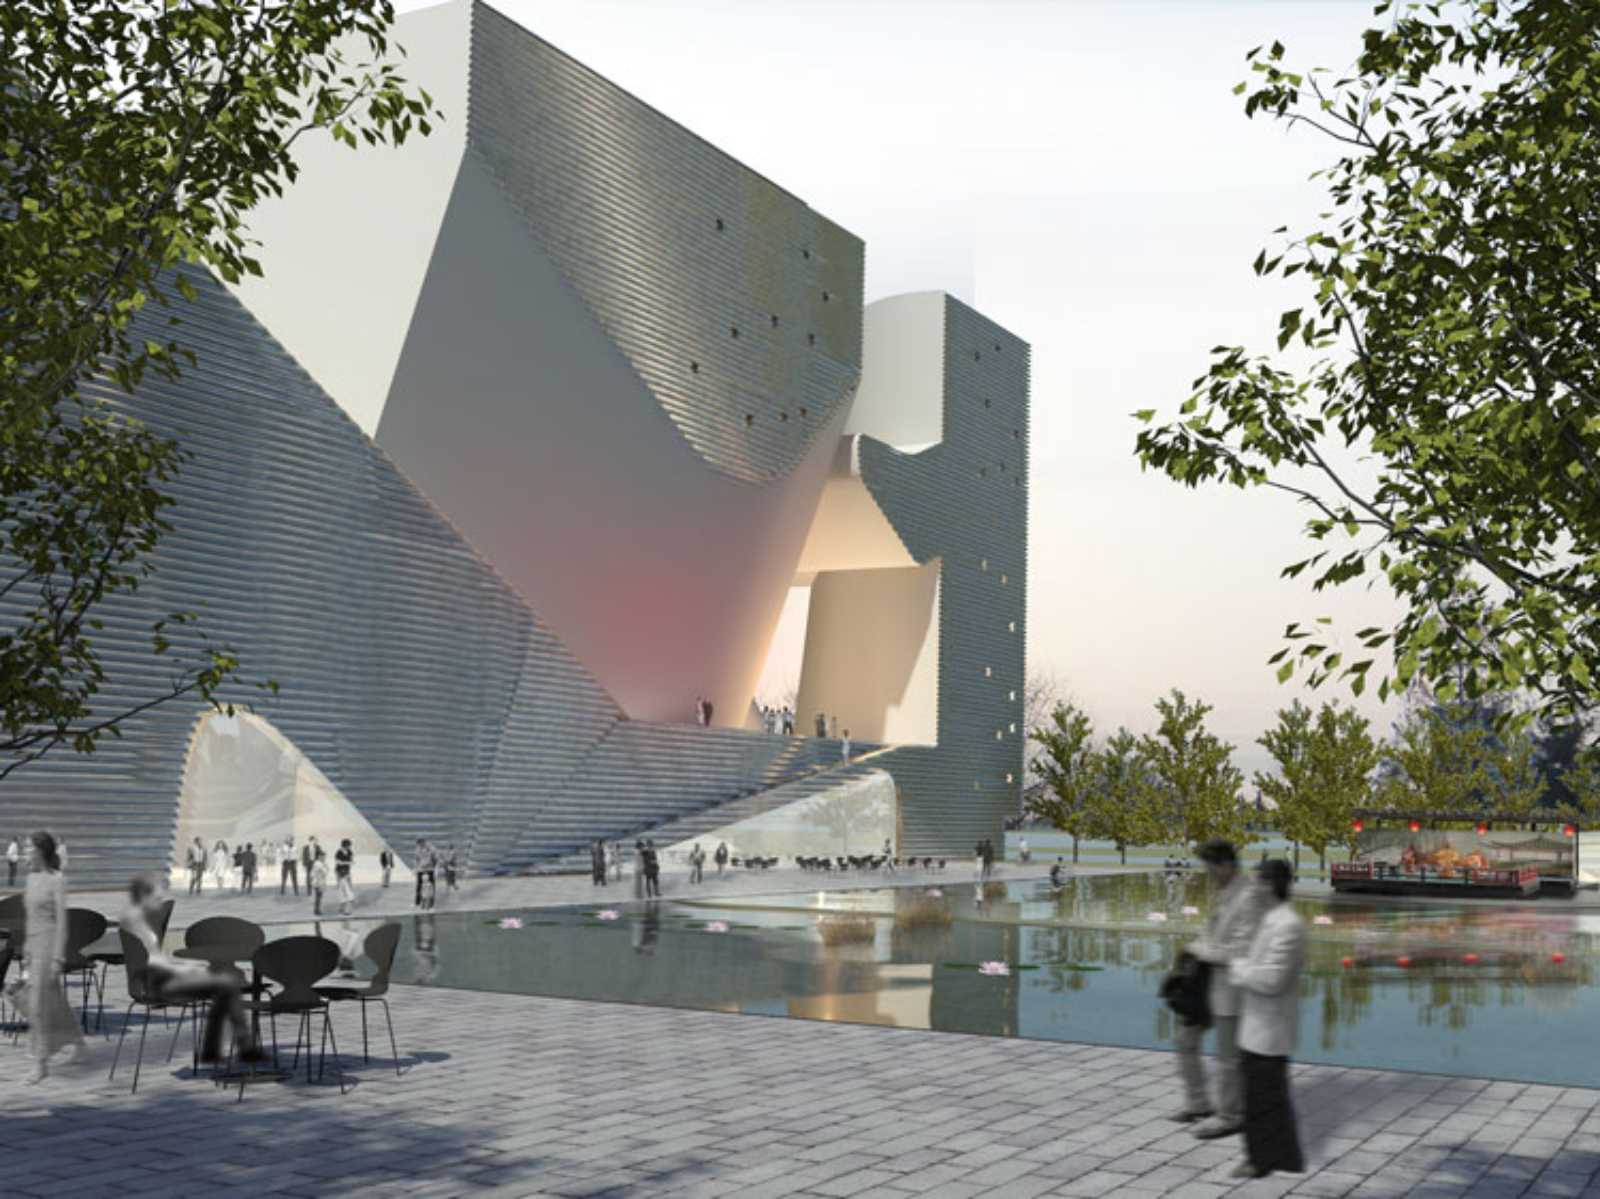 Architecture Design Ecological Planning ecology museum and planning museumsteven holl